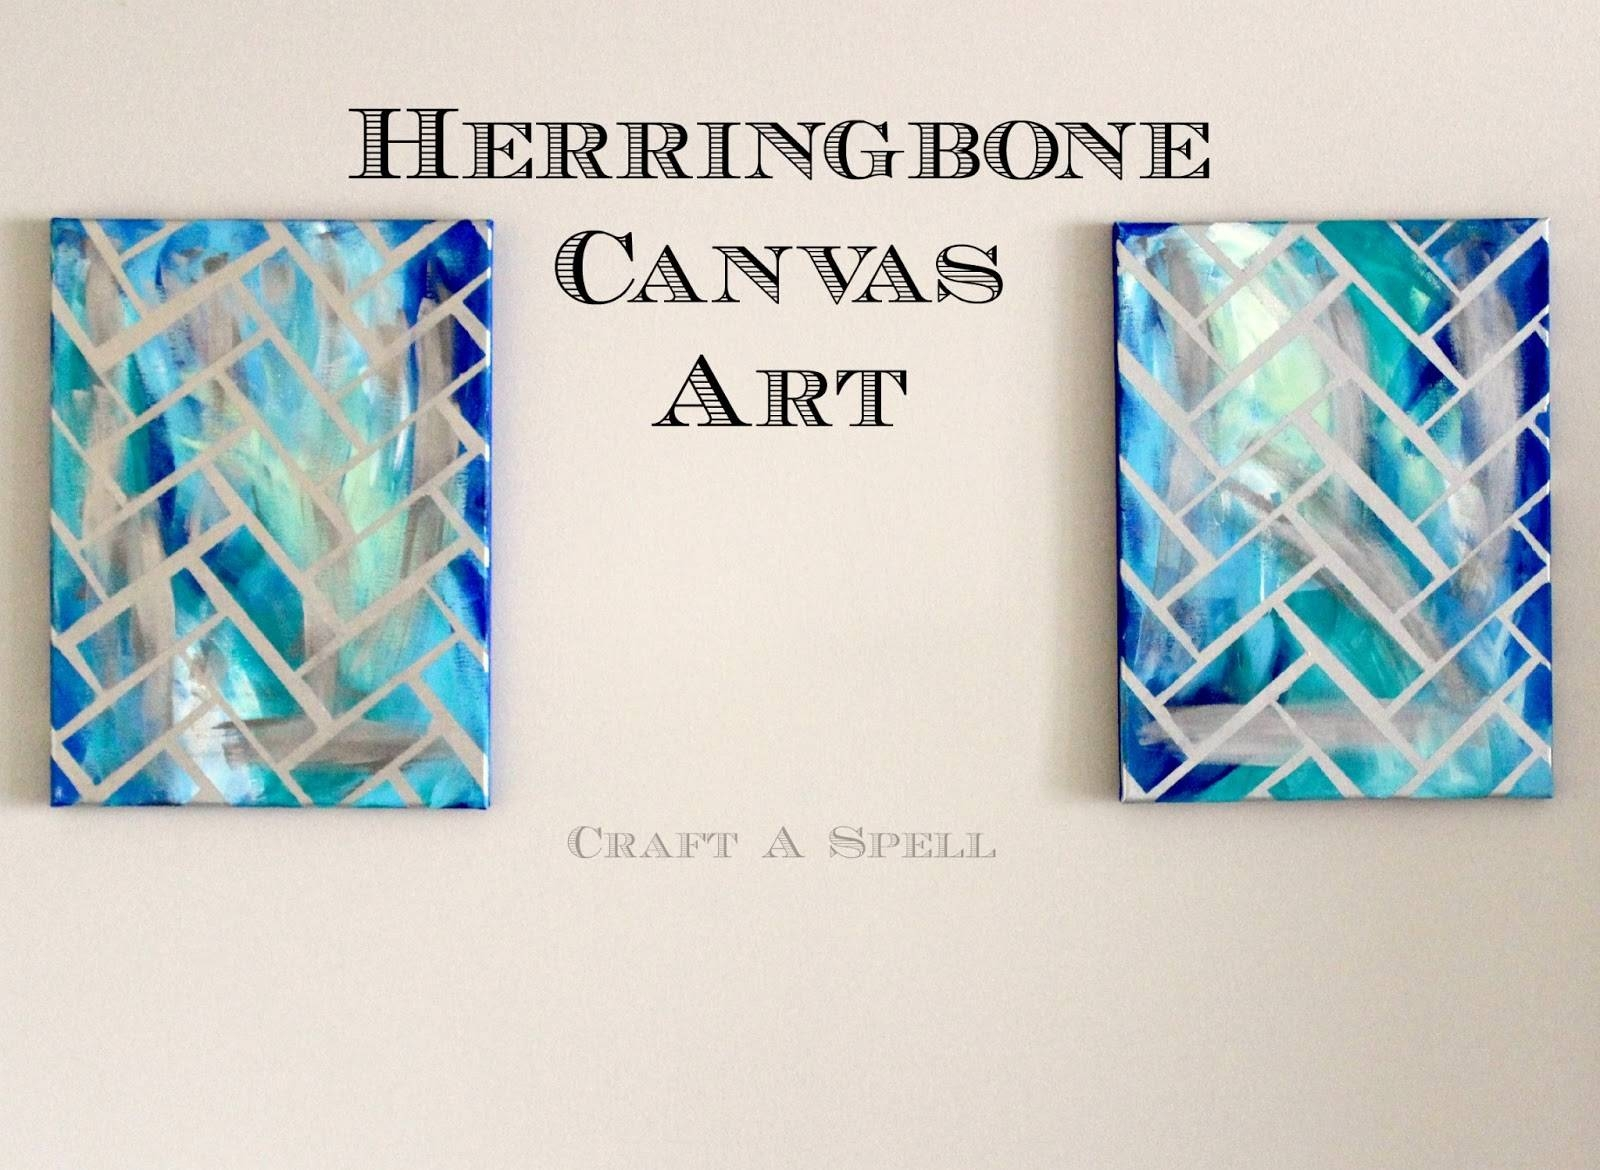 Craft A Spell: Diy Herringbone Canvas Art With Regard To Most Recent Diy Pinterest Canvas Art (View 22 of 25)